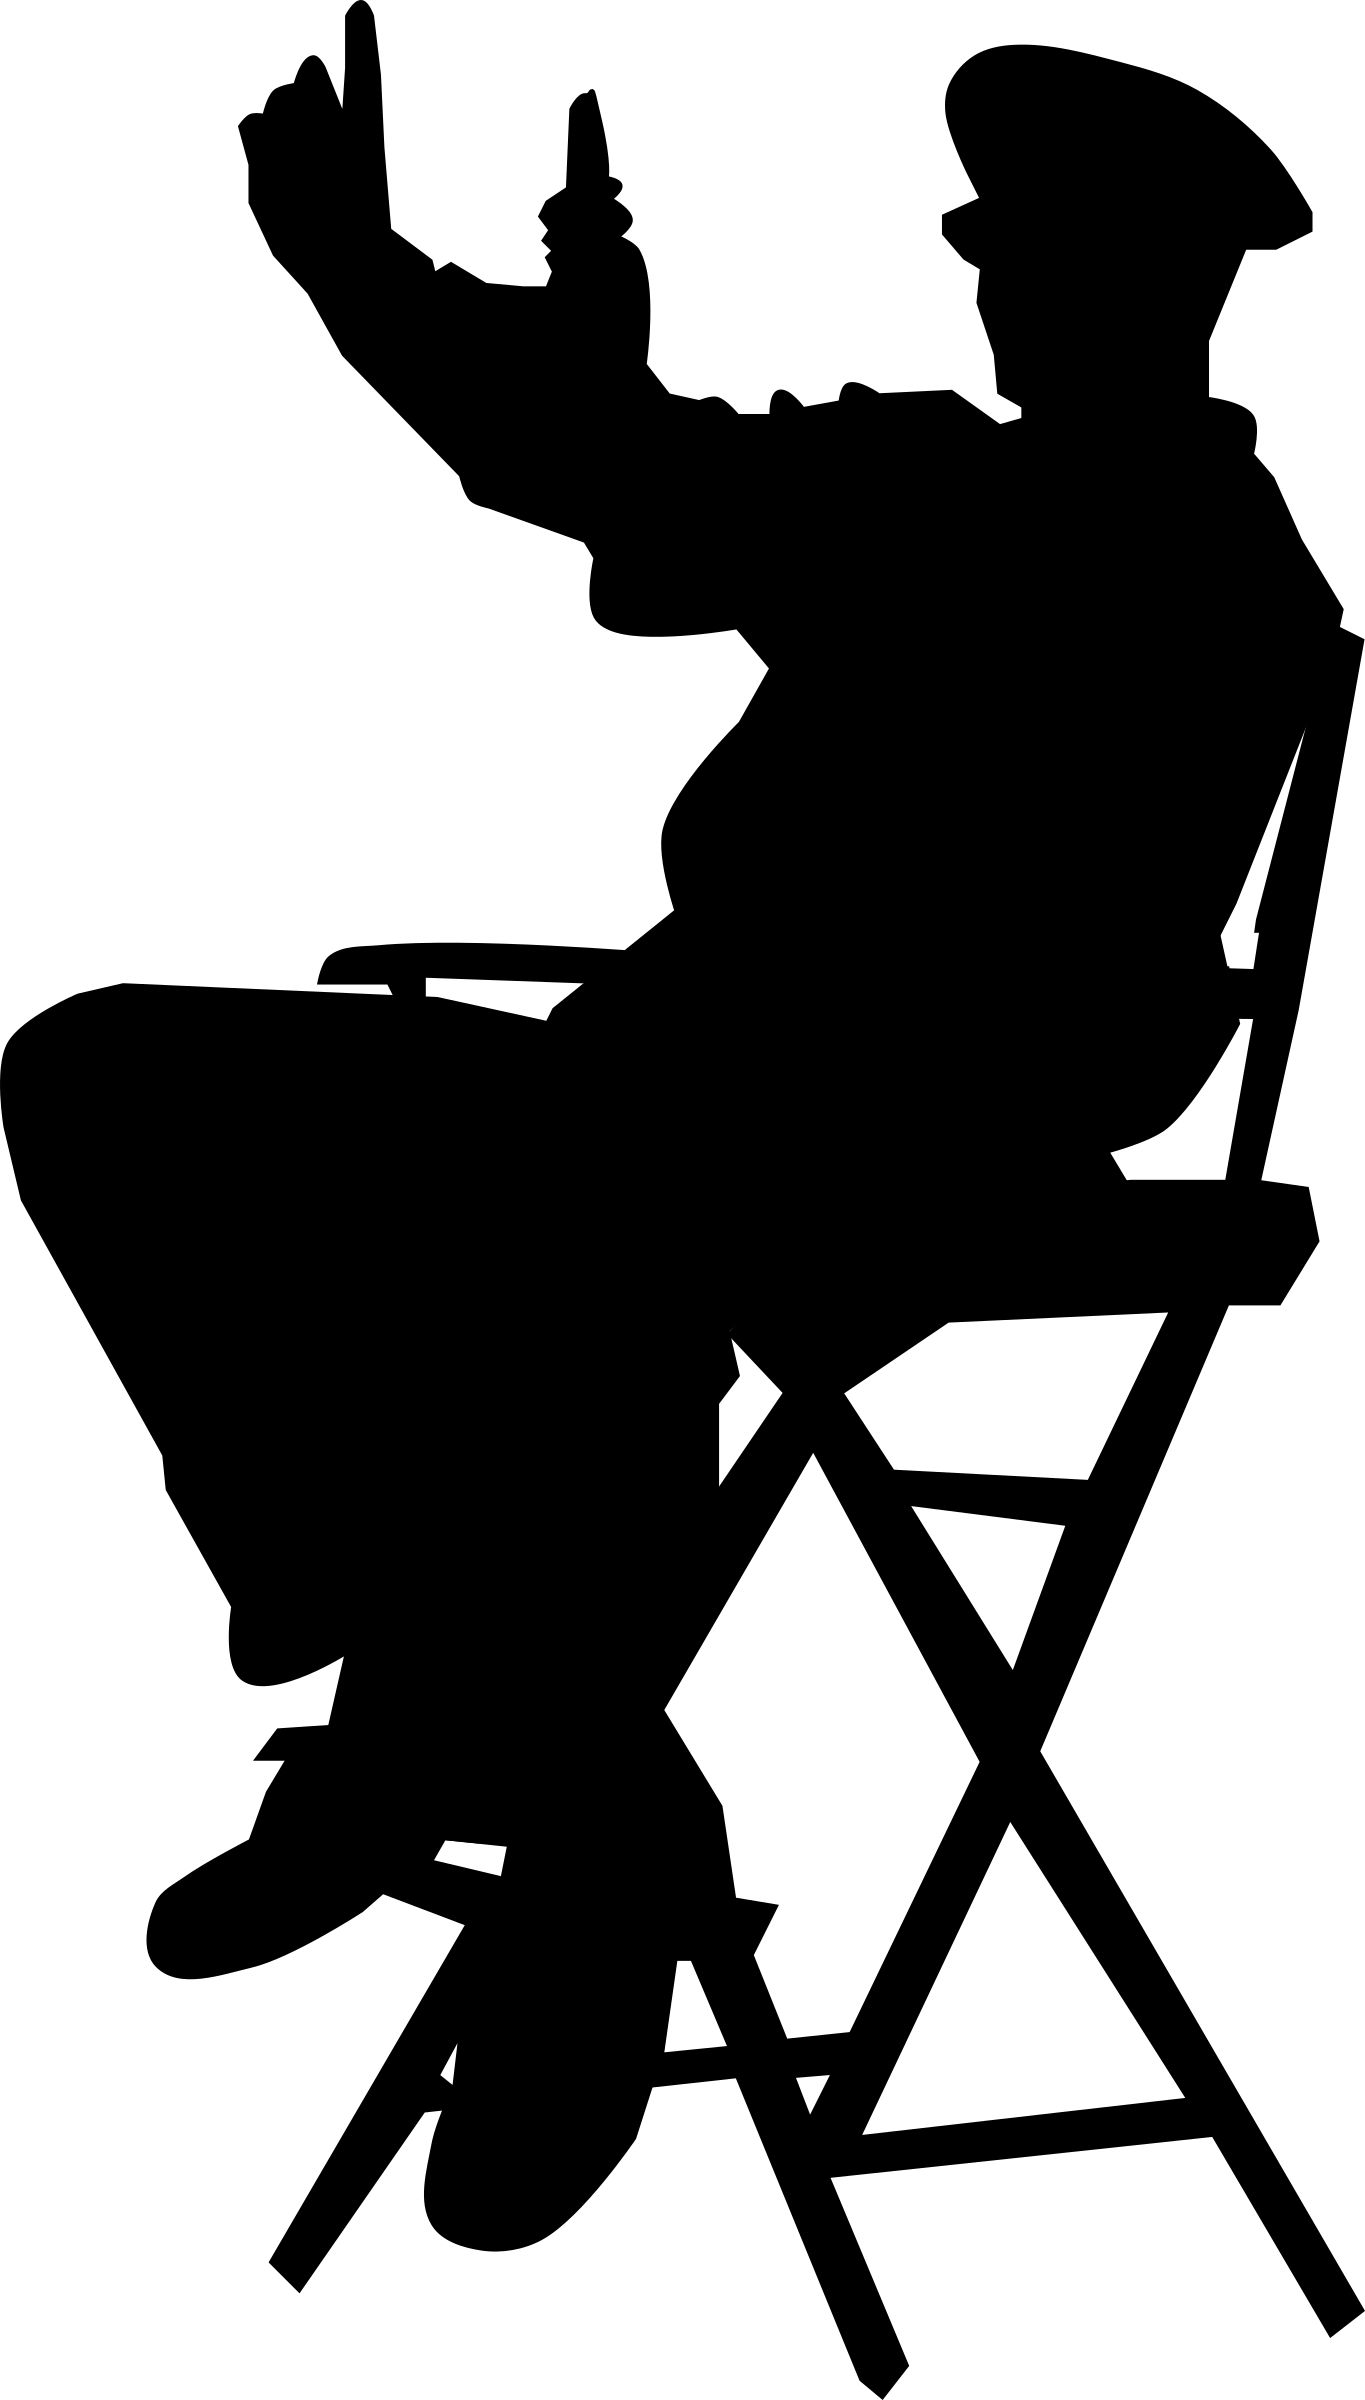 In chair wikiclipart . Action clipart director